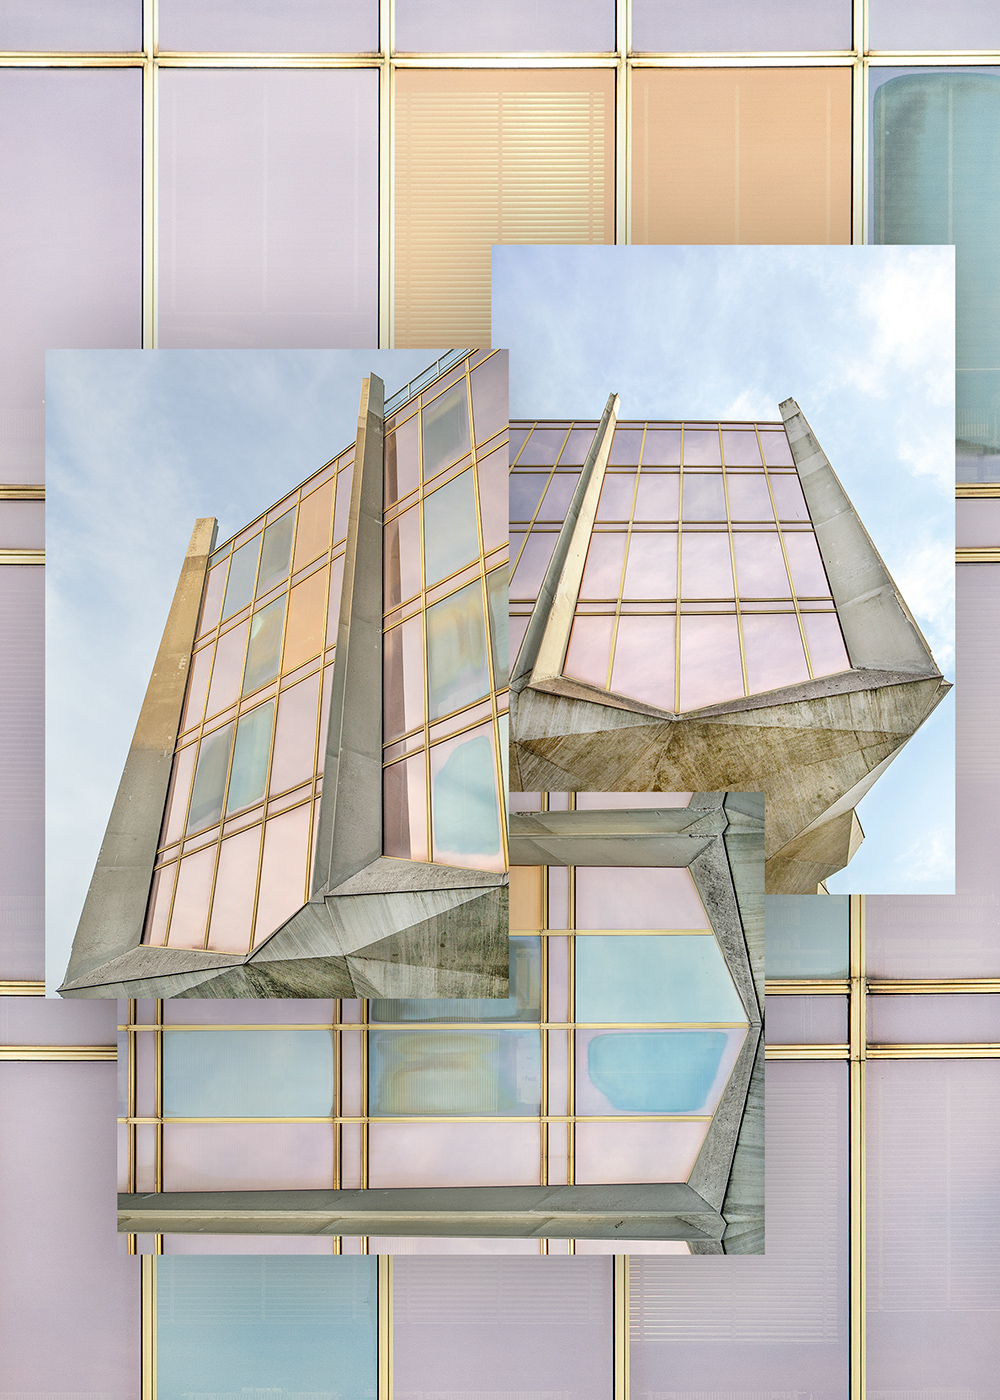 La Tulipe, set of 3 postcards, A6 I Brutalist Beauties series I © HEARTBRUT / Karin Hunter Bürki